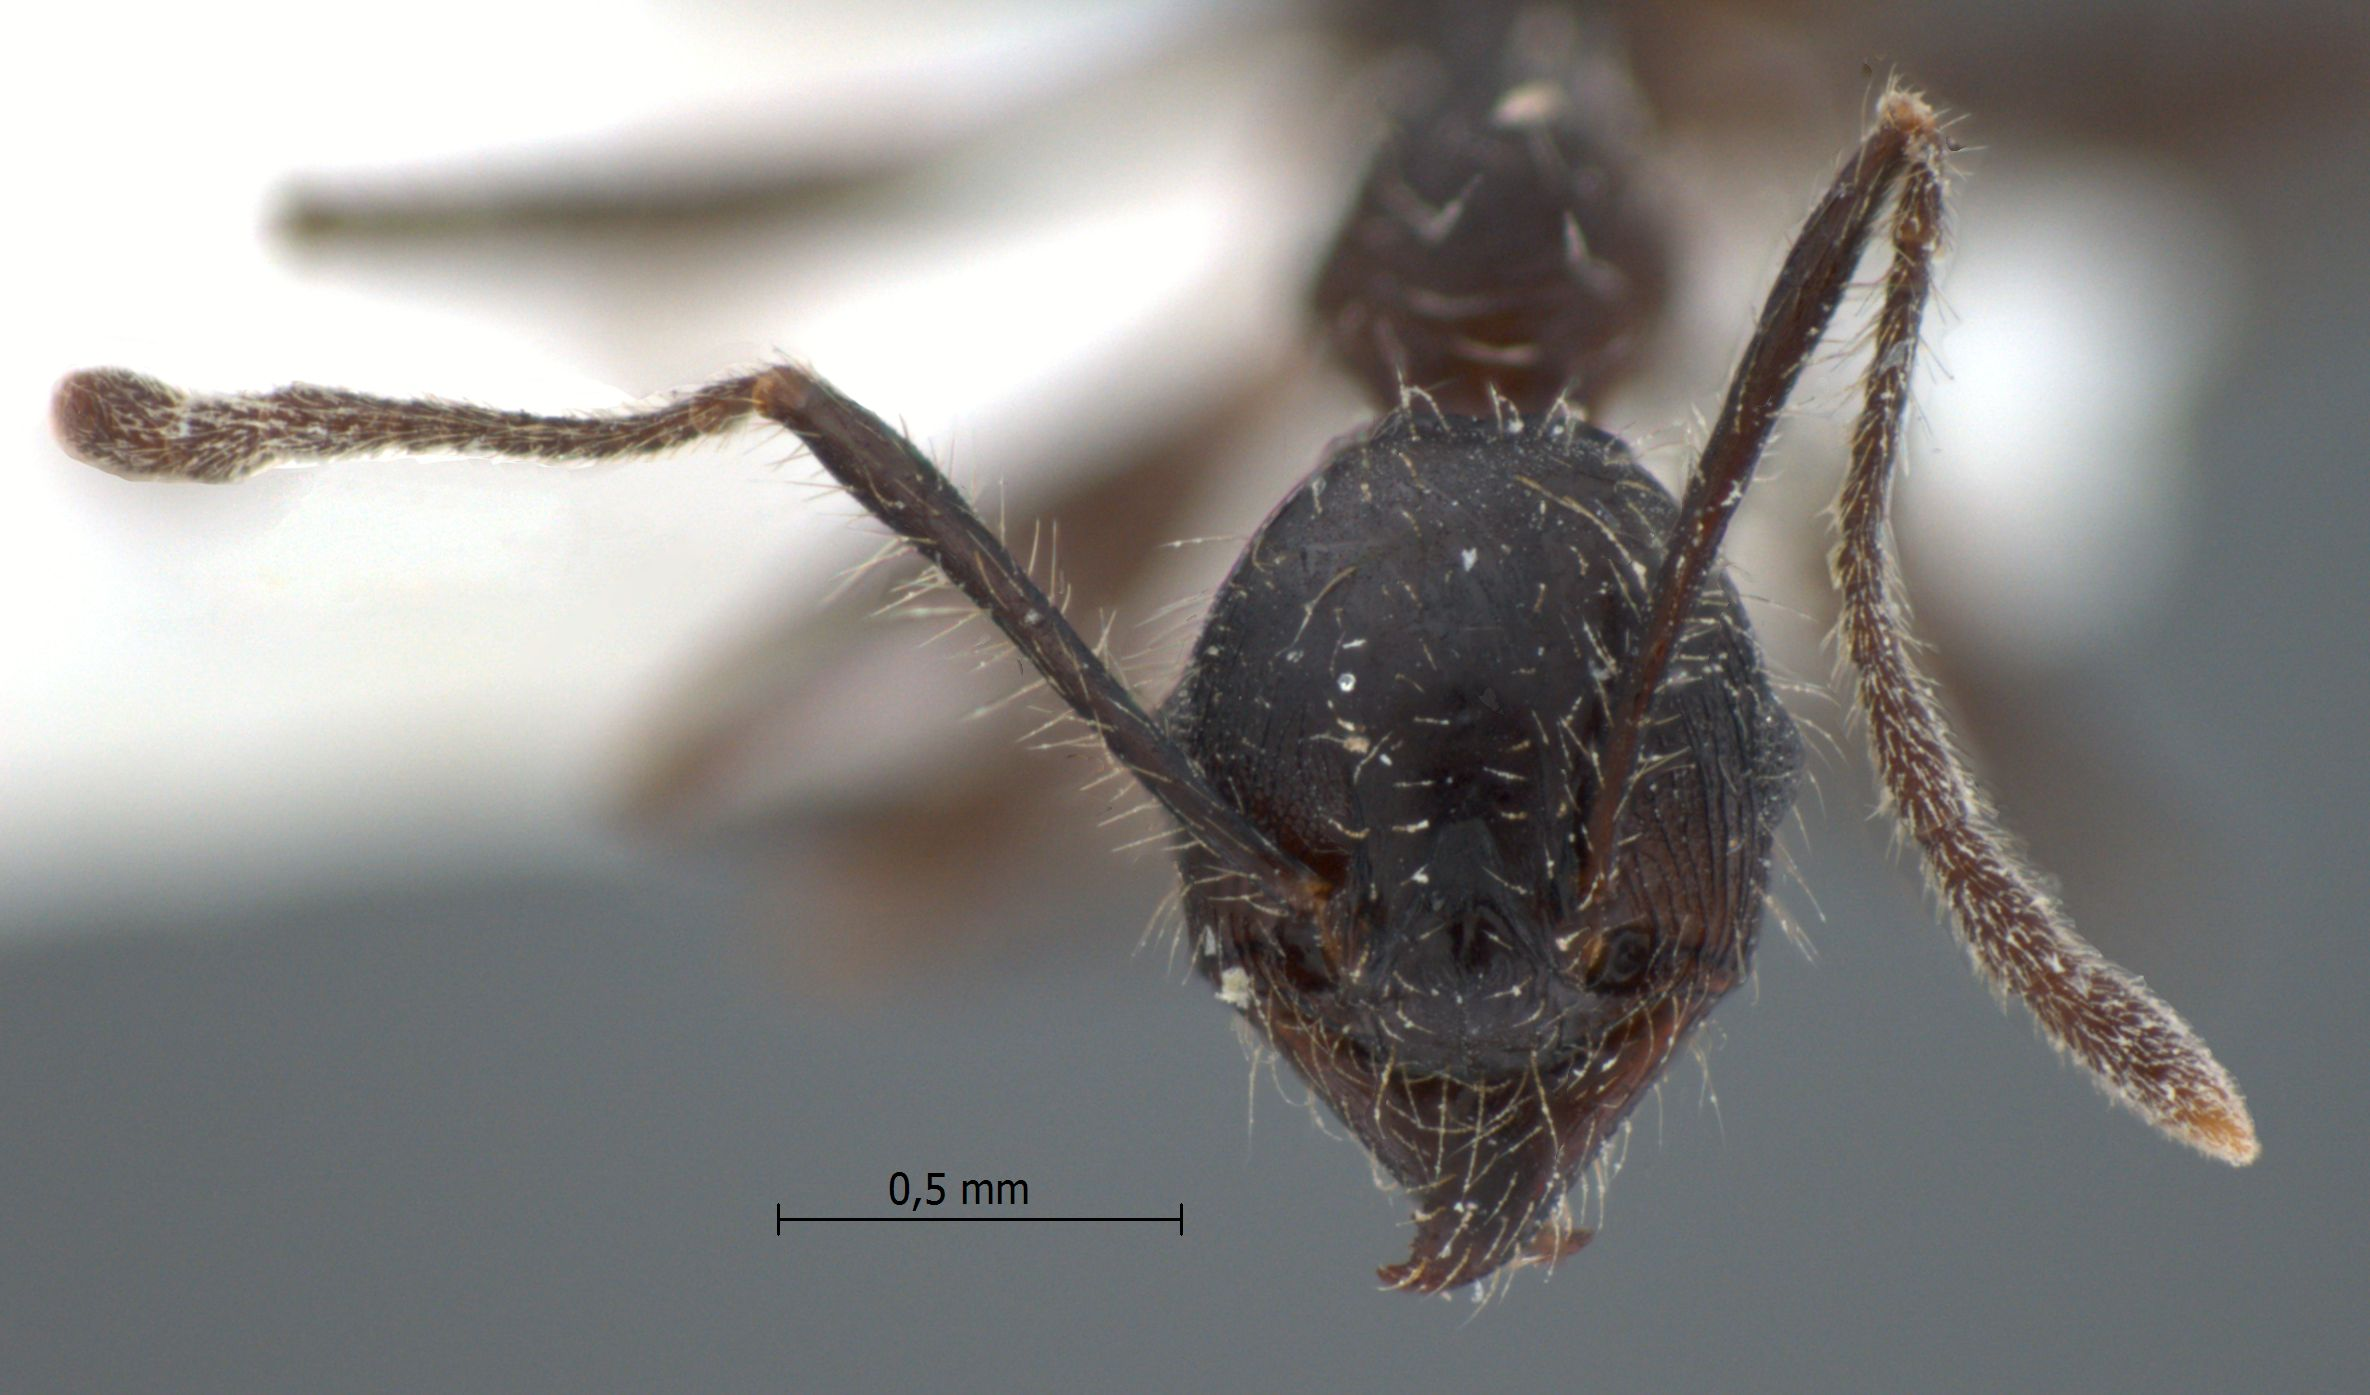 Pheidole modiglianii Emery, 1900 frontal